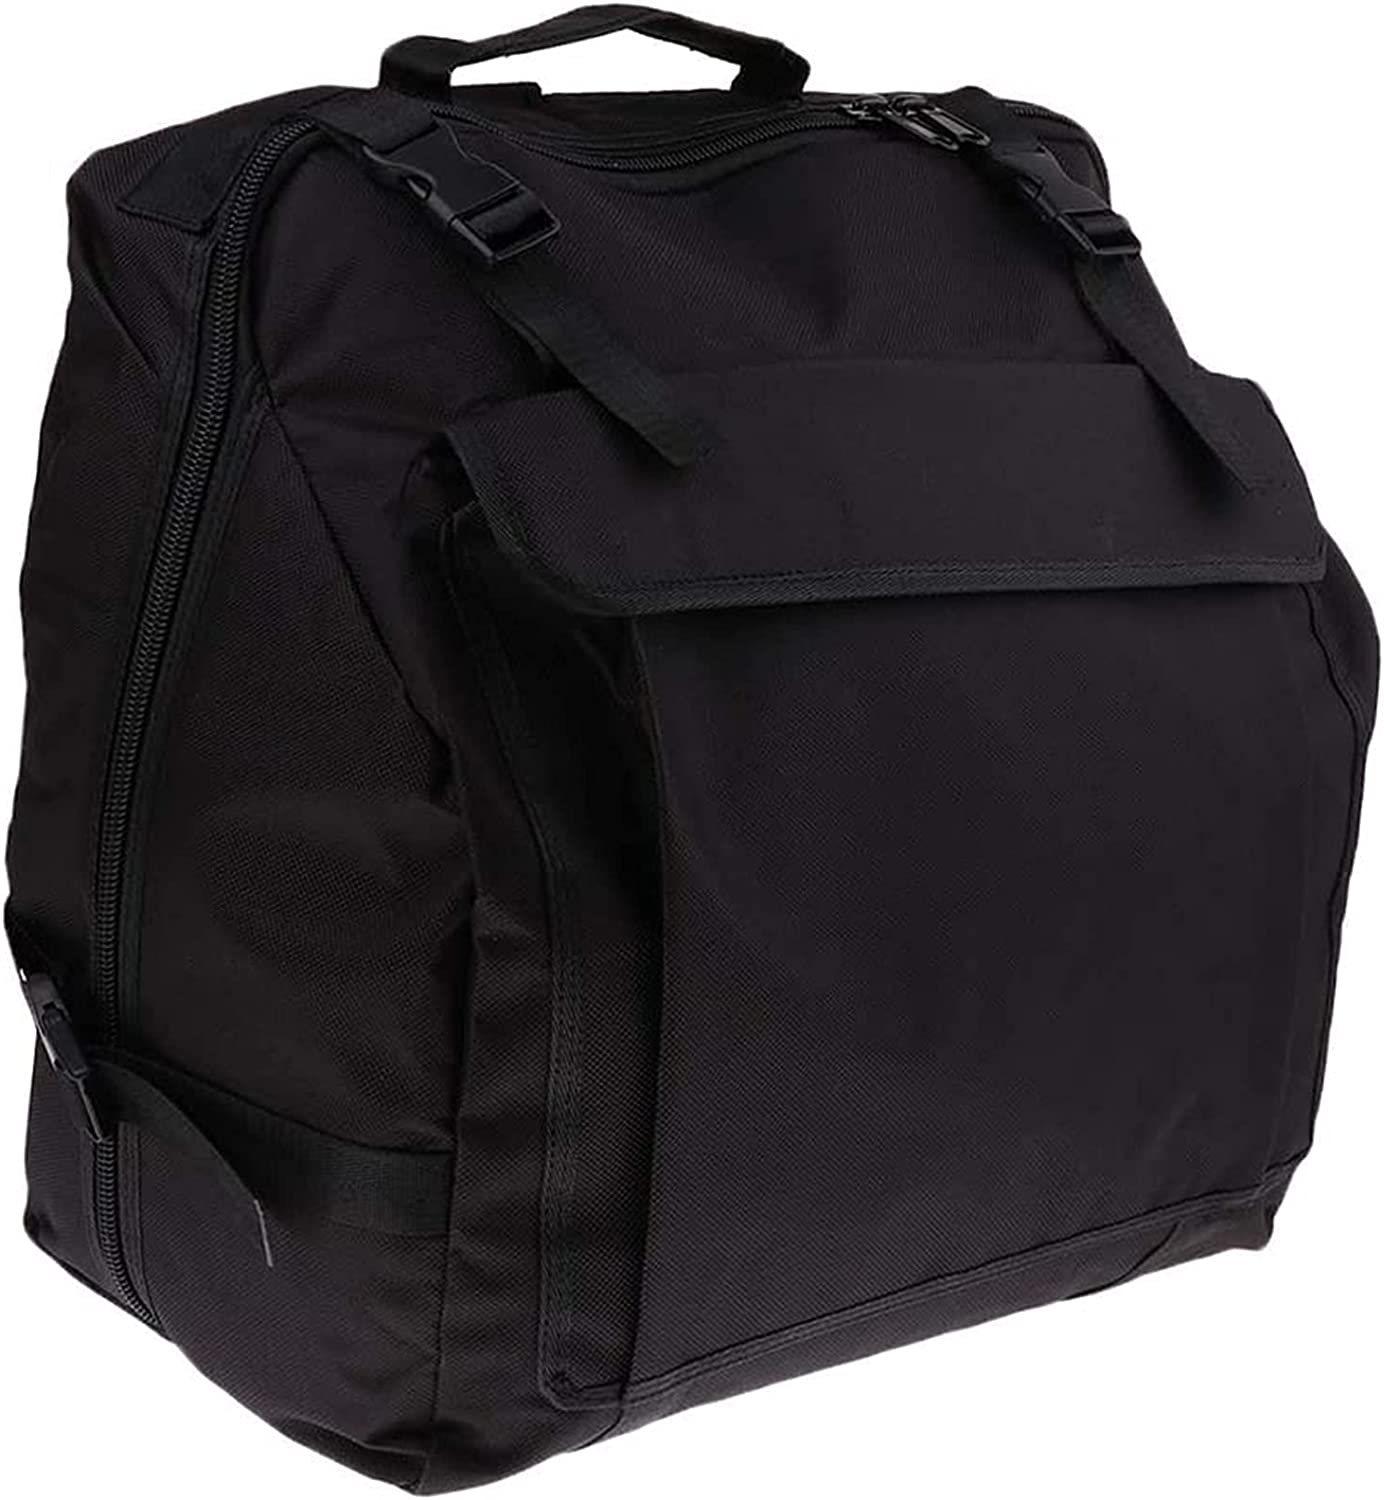 LUBINGT Seattle Mall Thick Padded Bass Piano Gig Bag Case Shipping included Accordion